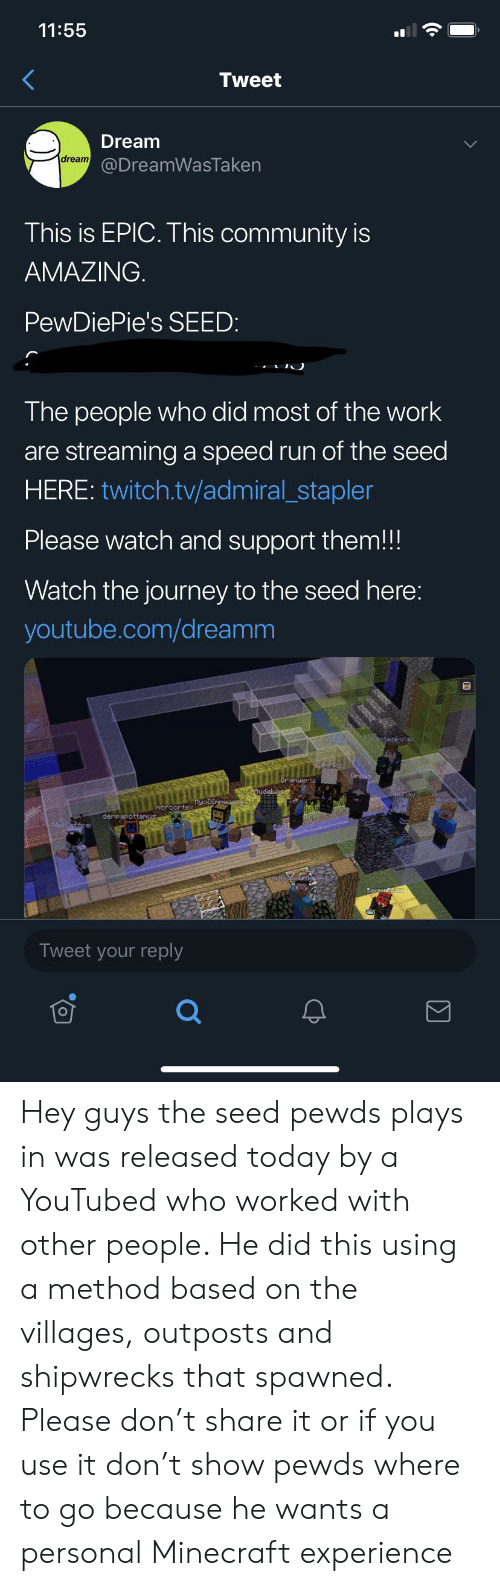 youtubed: 11:55  Tweet  Dream  dream  @DreamWasTaken  This is EPIC. This community is  AMAZING.  PewDiePie's SEED:  The people who did most of the work  are streaminga speed run of the seed  HERE: twitch.tv/admiral_stapler  Please watch and support them!!!  Watch the journey to the seed here:  youtube.com/dreamm  stainl-uta:  udel  ay  derpapottan corte yoDInnaasebe  CEP ercafficei  Seggon  Tweet your reply Hey guys the seed pewds plays in was released today by a YouTubed who worked with other people. He did this using a method based on the villages, outposts and shipwrecks that spawned. Please don't share it or if you use it don't show pewds where to go because he wants a personal Minecraft experience